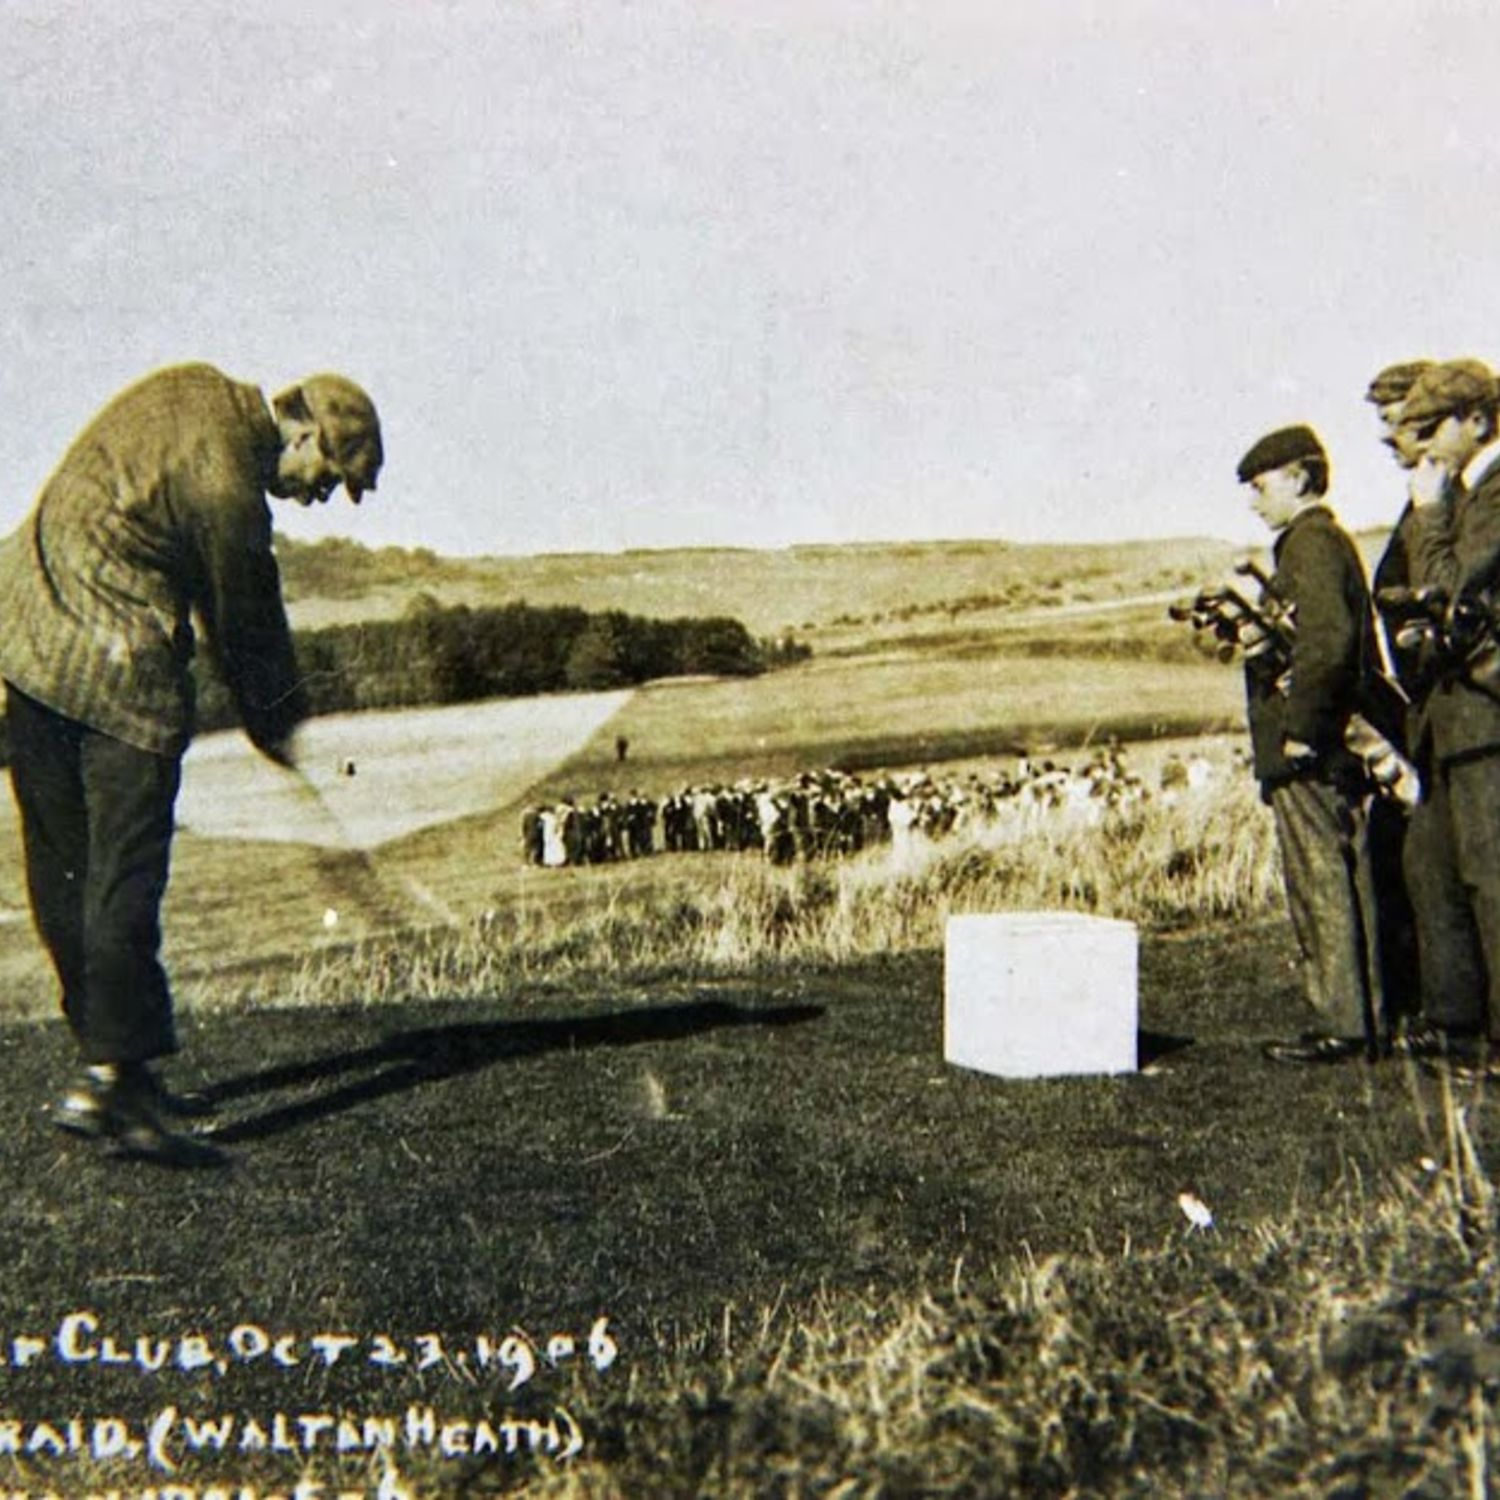 James Braid the Open Champion playing a 36 hole exhibition match against Harry Varden, Oct 1906